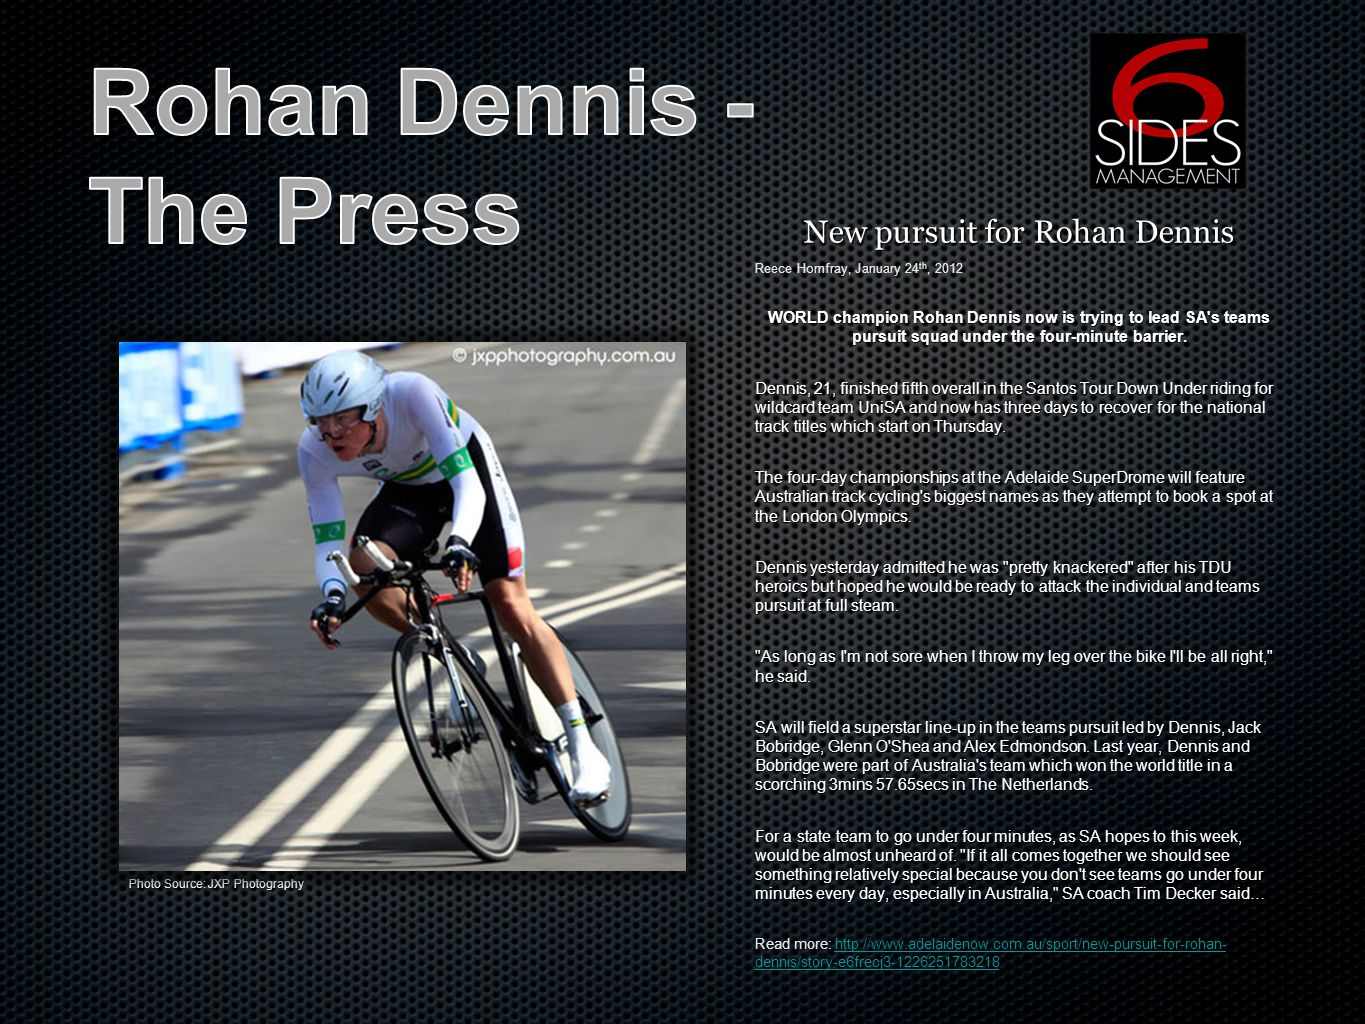 New pursuit for Rohan Dennis Reece Homfray, January 24 th, 2012 WORLD champion Rohan Dennis now is trying to lead SA s teams pursuit squad under the four-minute barrier.